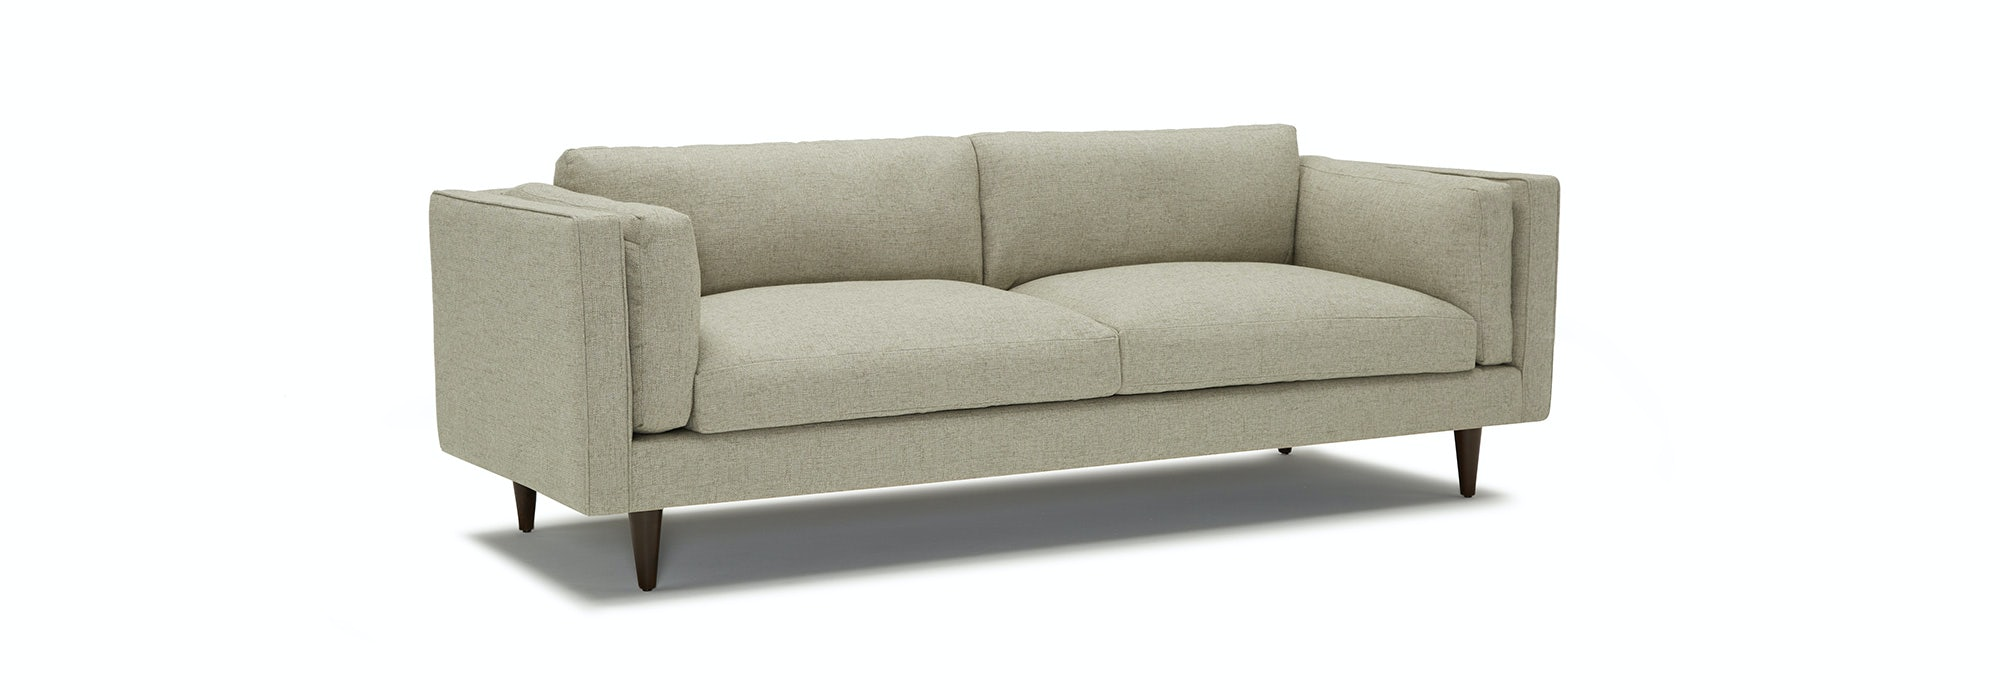 Incredible Parker Sofa Ocoug Best Dining Table And Chair Ideas Images Ocougorg